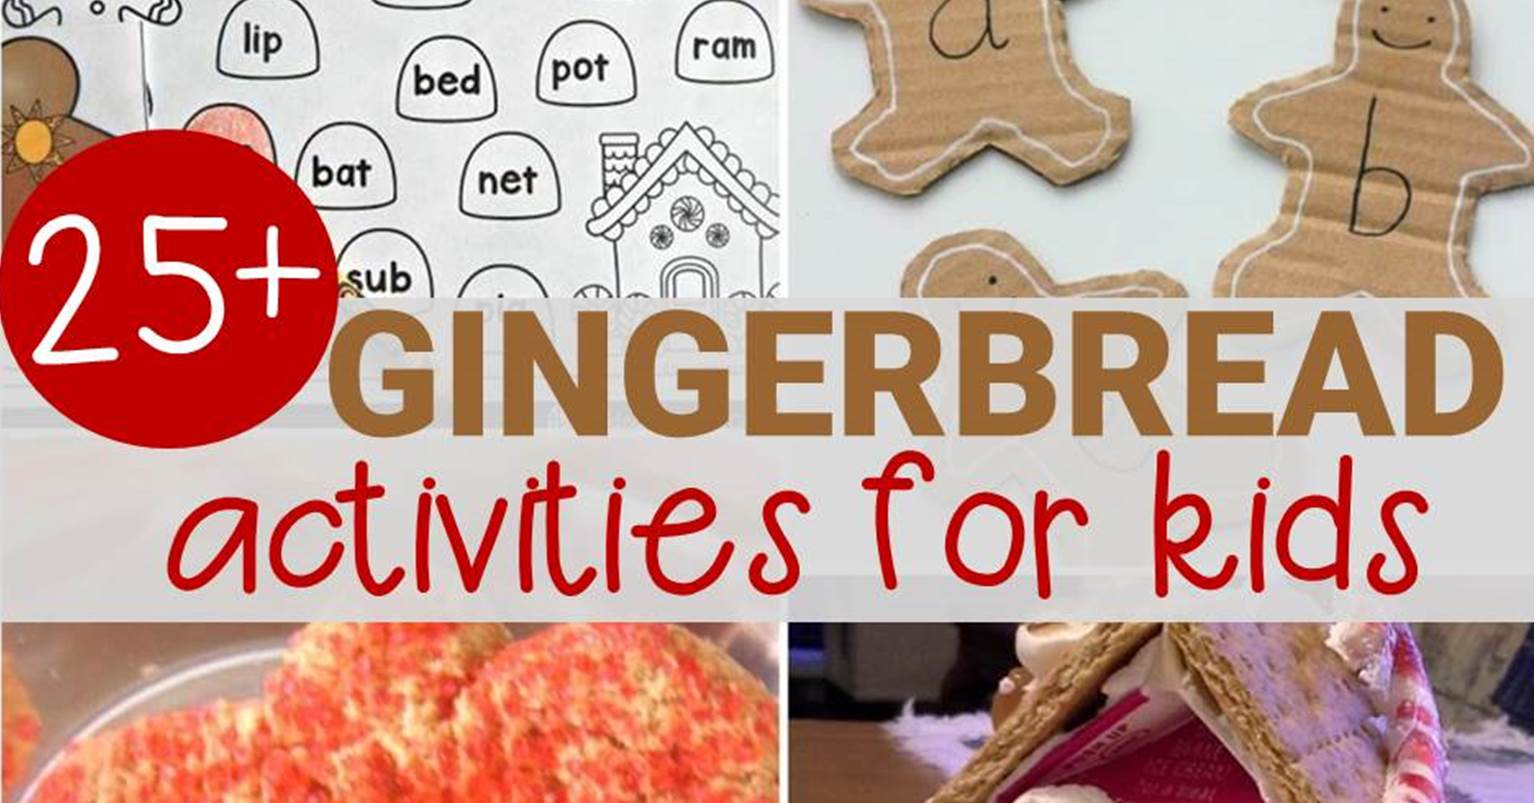 Fun gingerbread activities for kids!